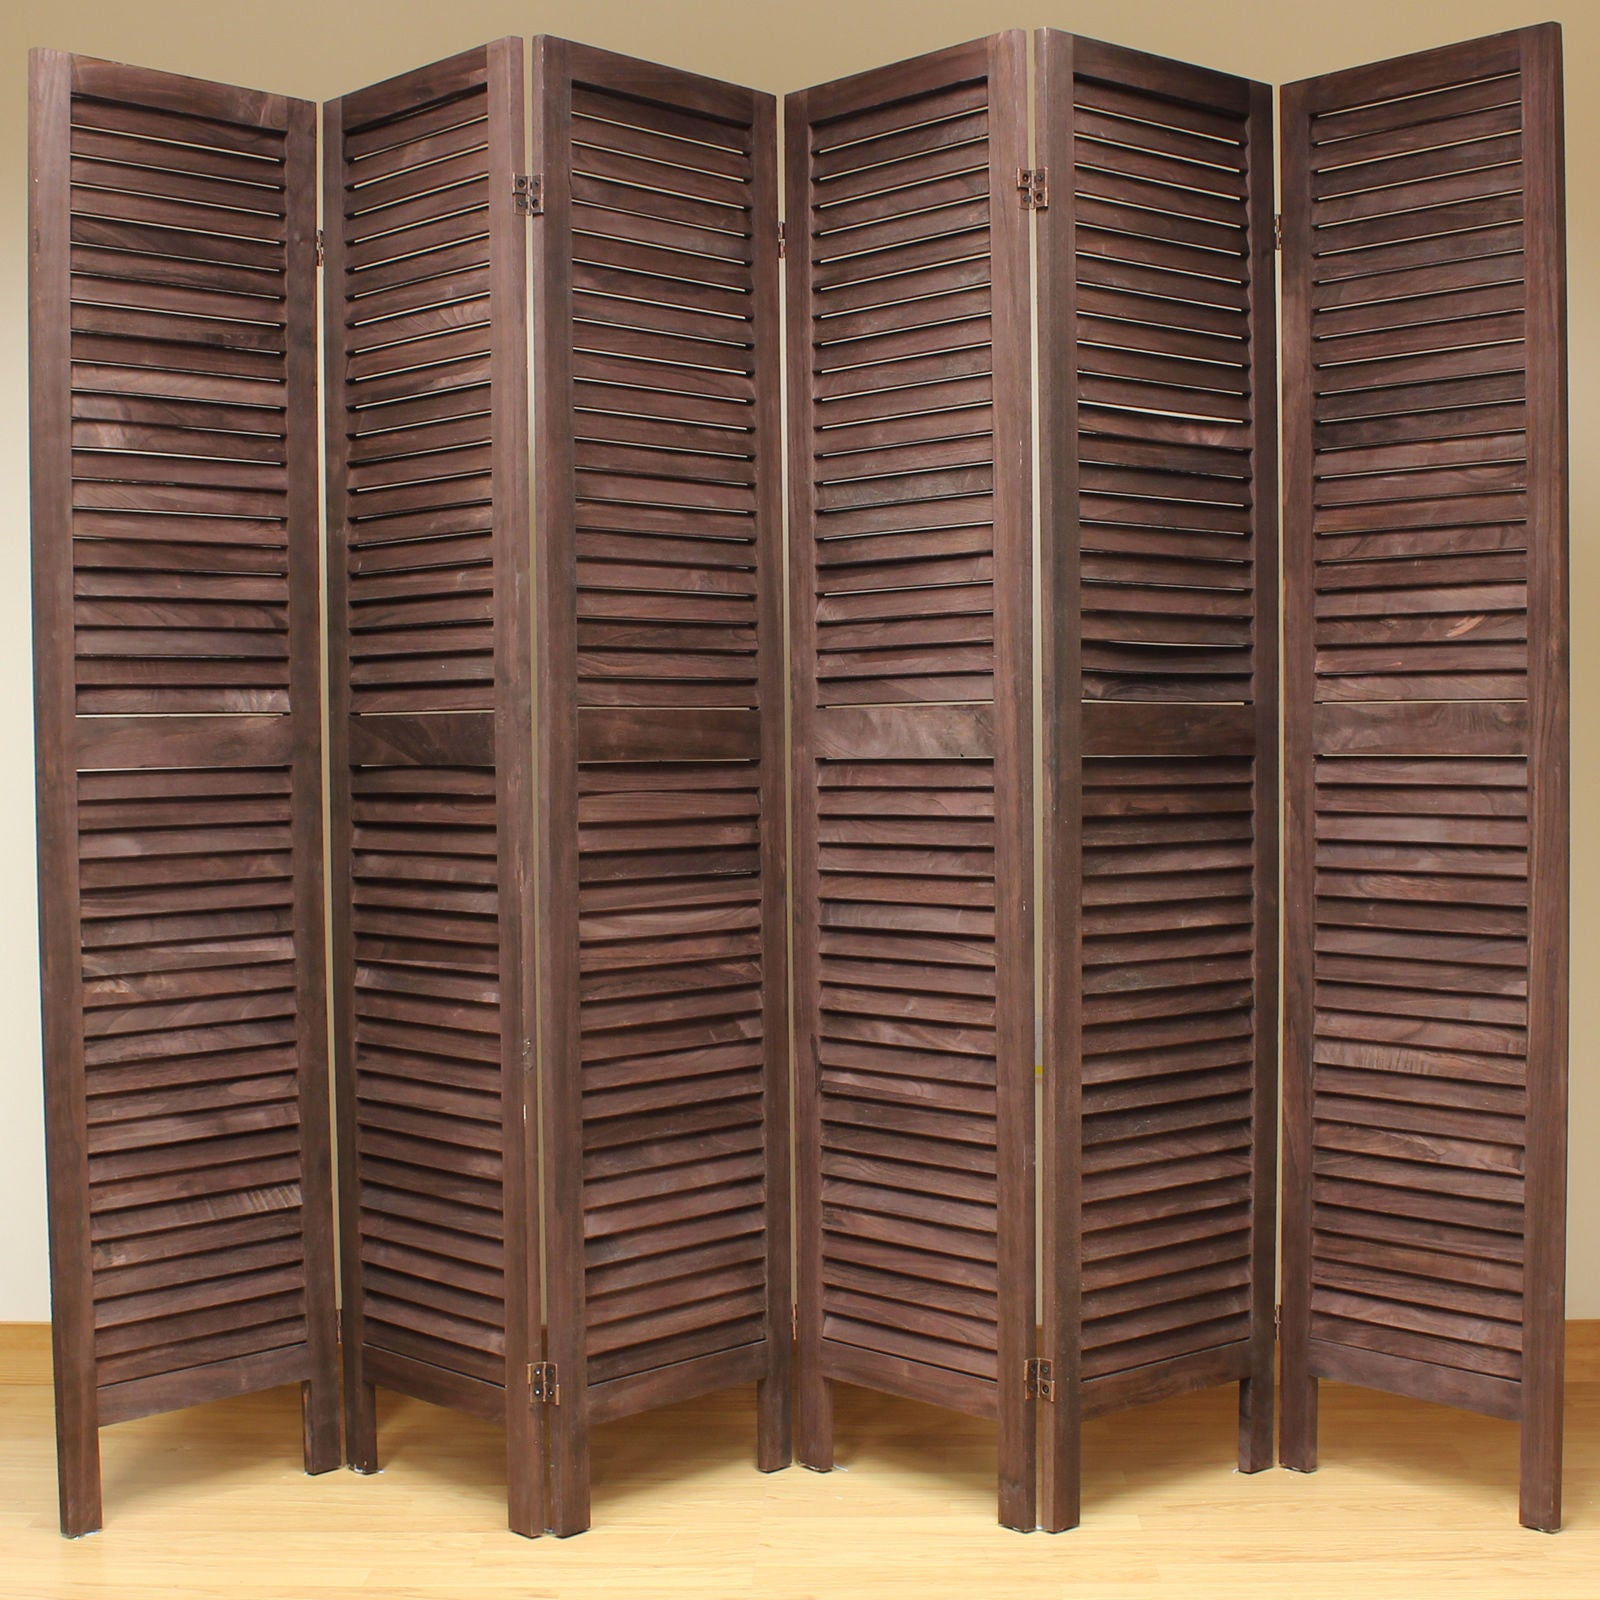 Phenomenal Wooden Slat Room Divider Screen 6 Panel Brown Download Free Architecture Designs Embacsunscenecom